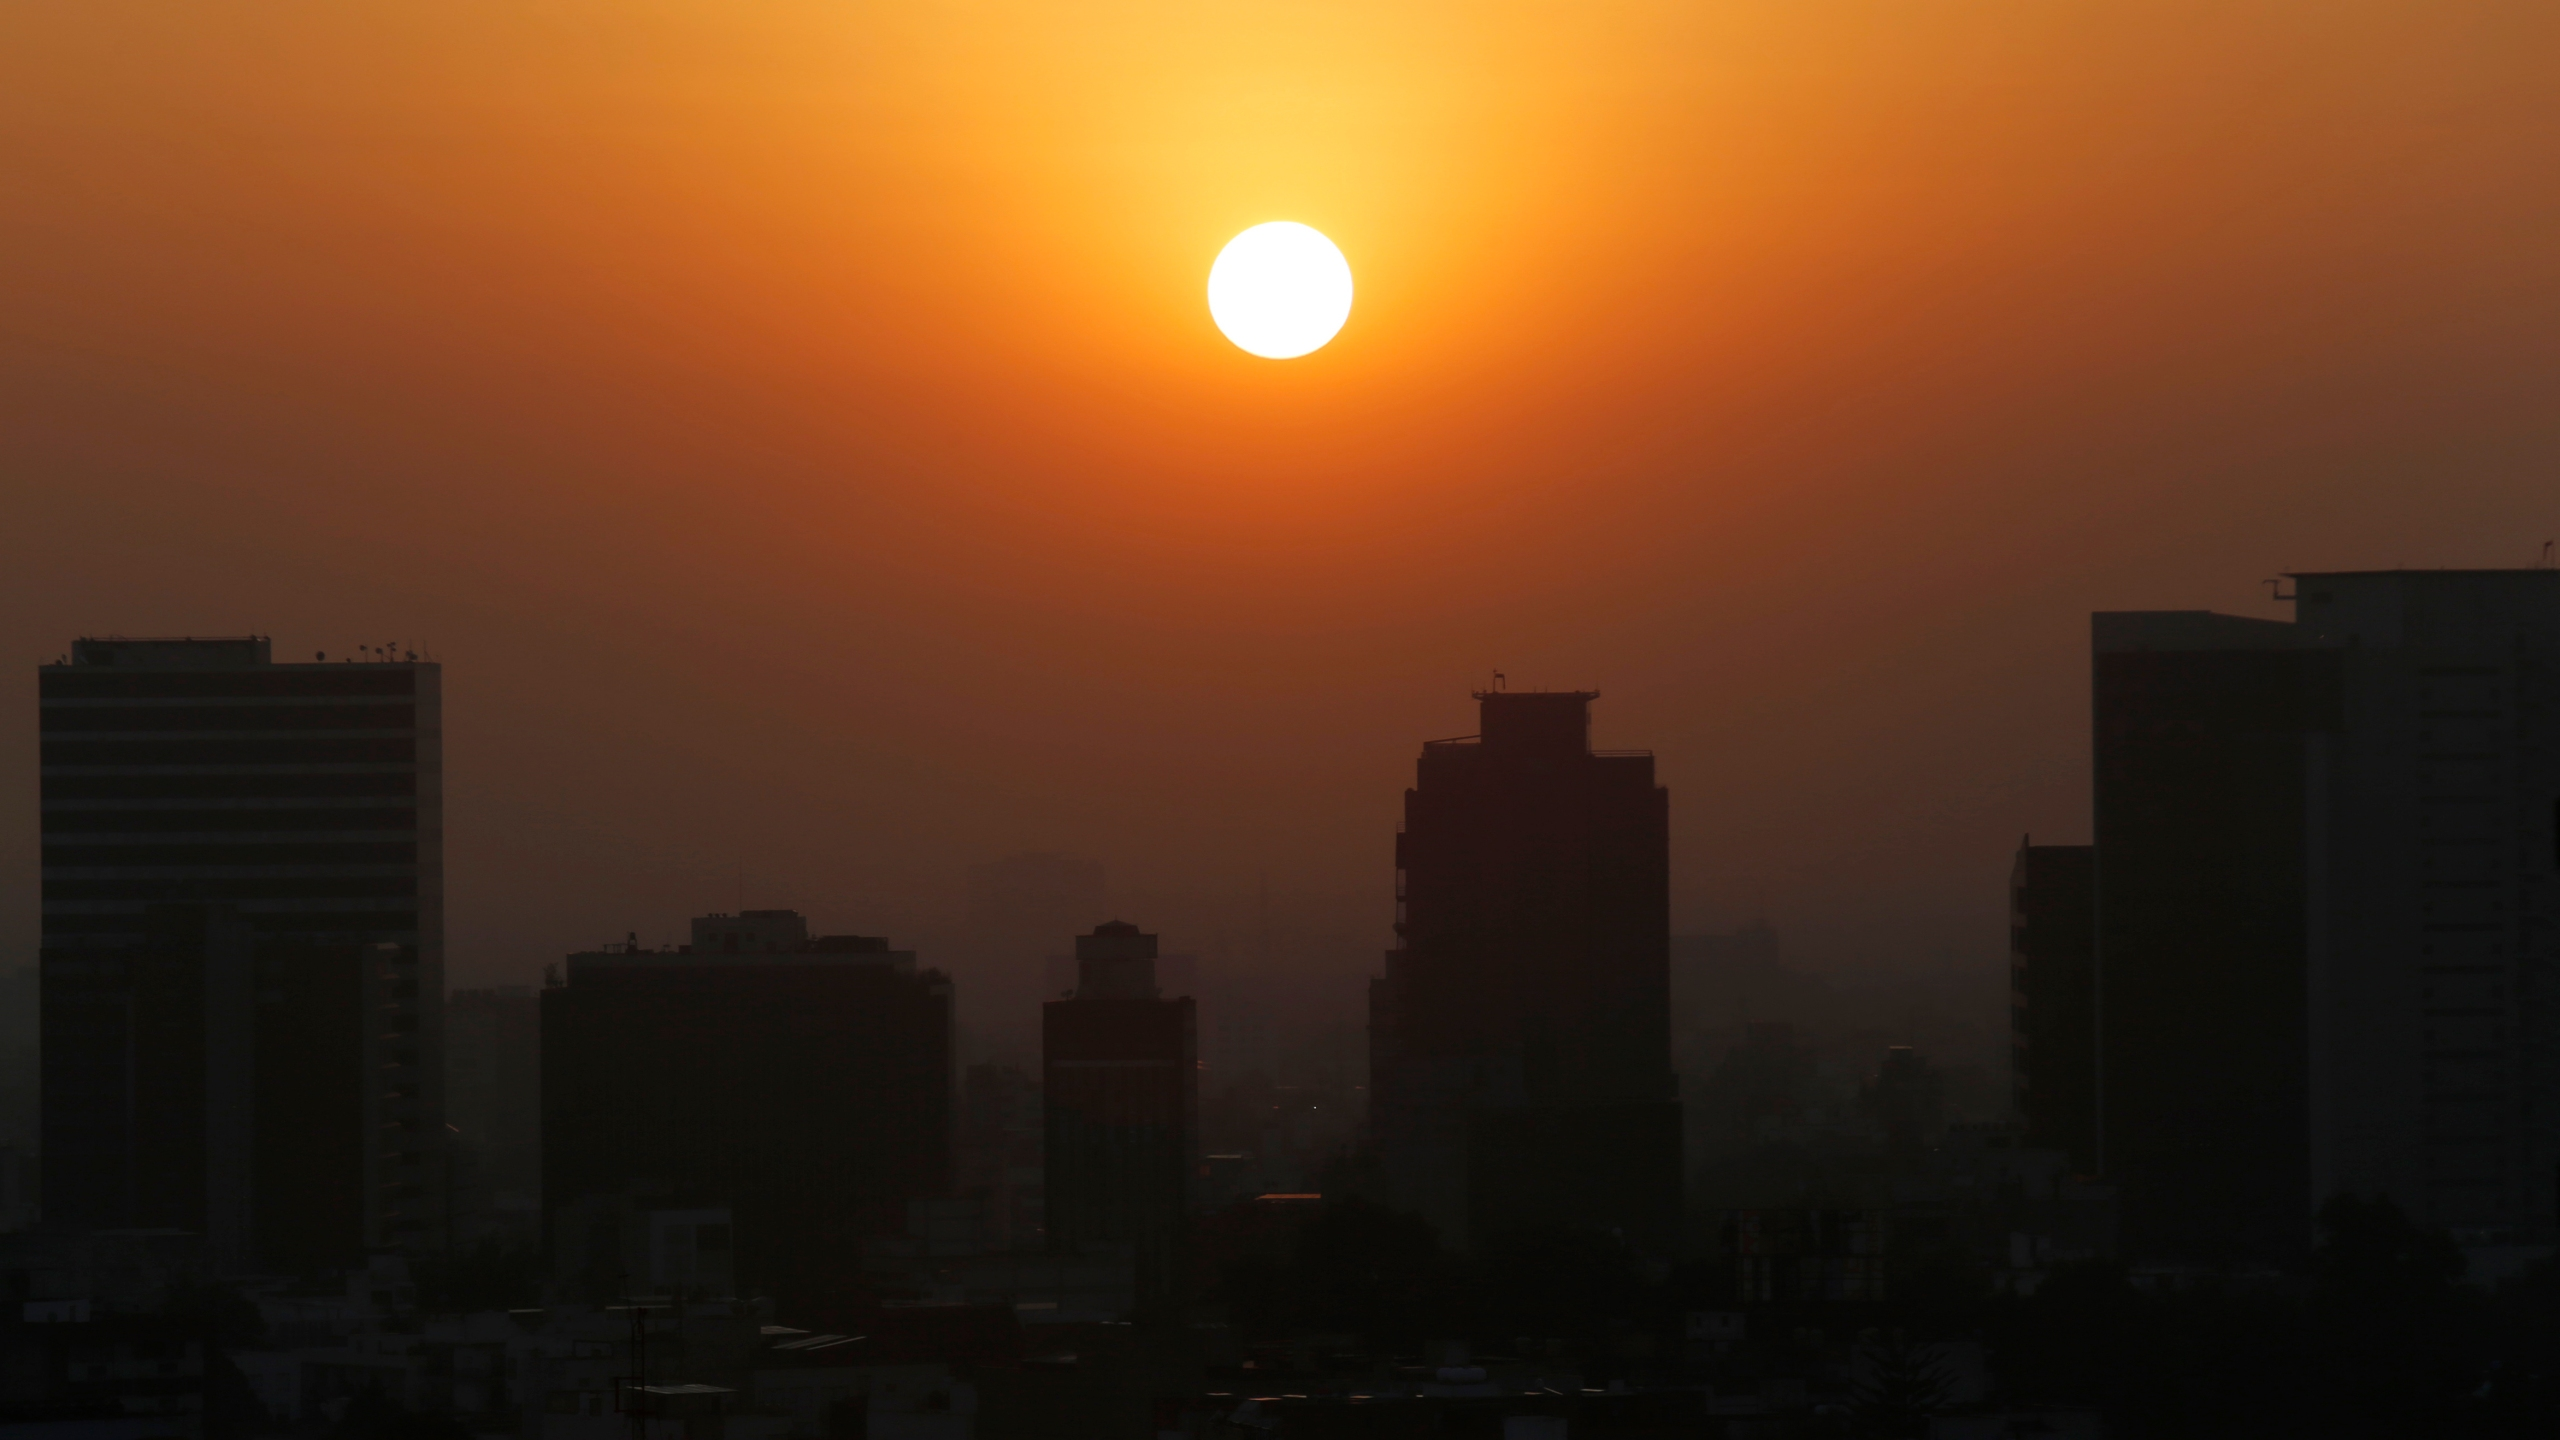 In this Thursday, Feb. 20, 2020 file photo, the sun rises amid smog during the dry season in Mexico City. Five years after a historic climate deal in Paris, world leaders are again meeting to increase their efforts to fight global warming. (AP Photo/Marco Ugarte)